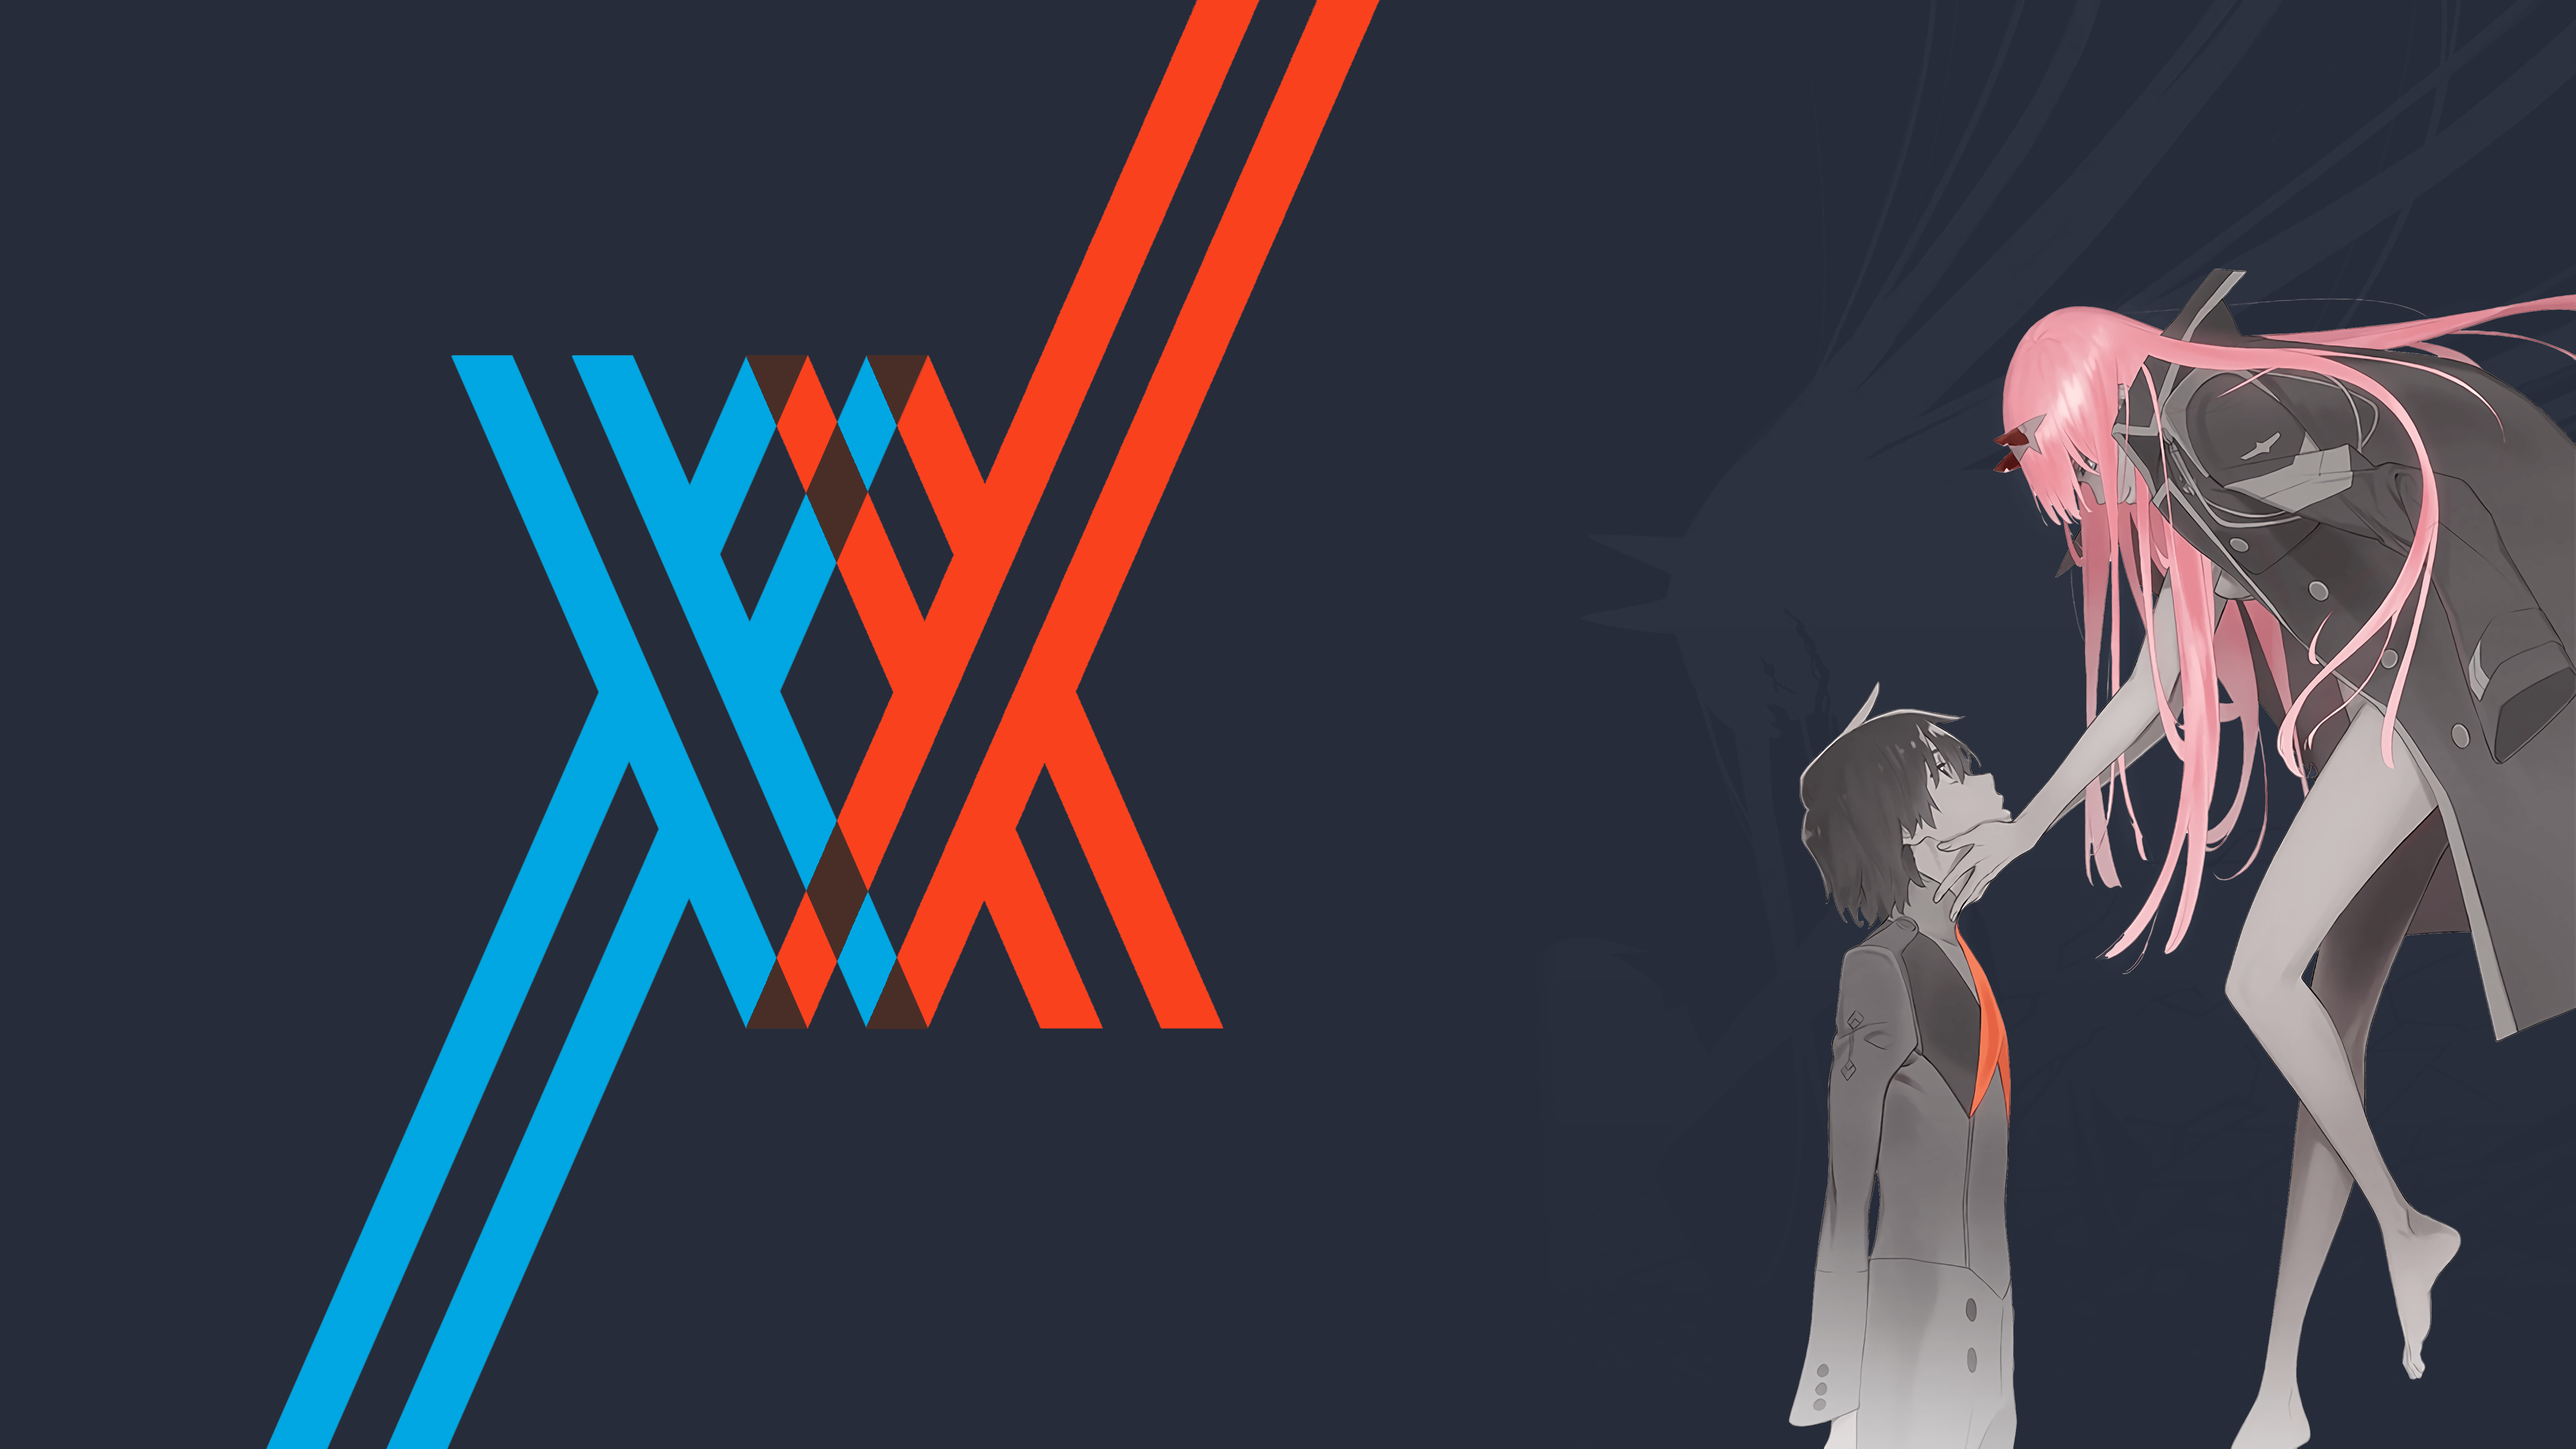 Darling in the Franxx Wallpapers : DarlingInTheFranxx